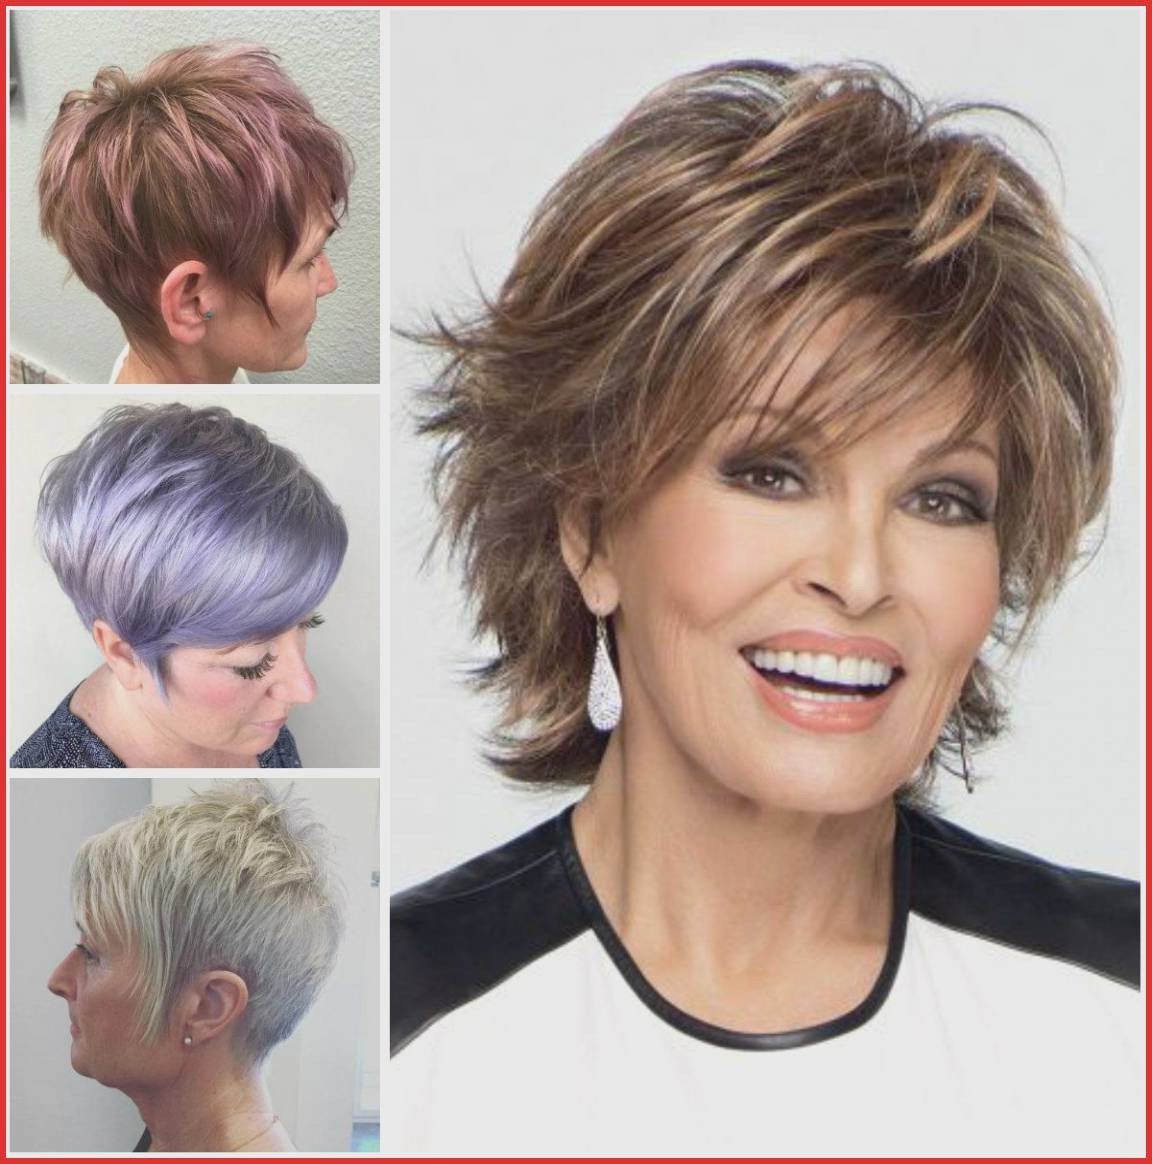 Find Out Full Gallery Of 20 Short Haircuts For Fat Women Regarding Fat Short Hair (View 20 of 25)